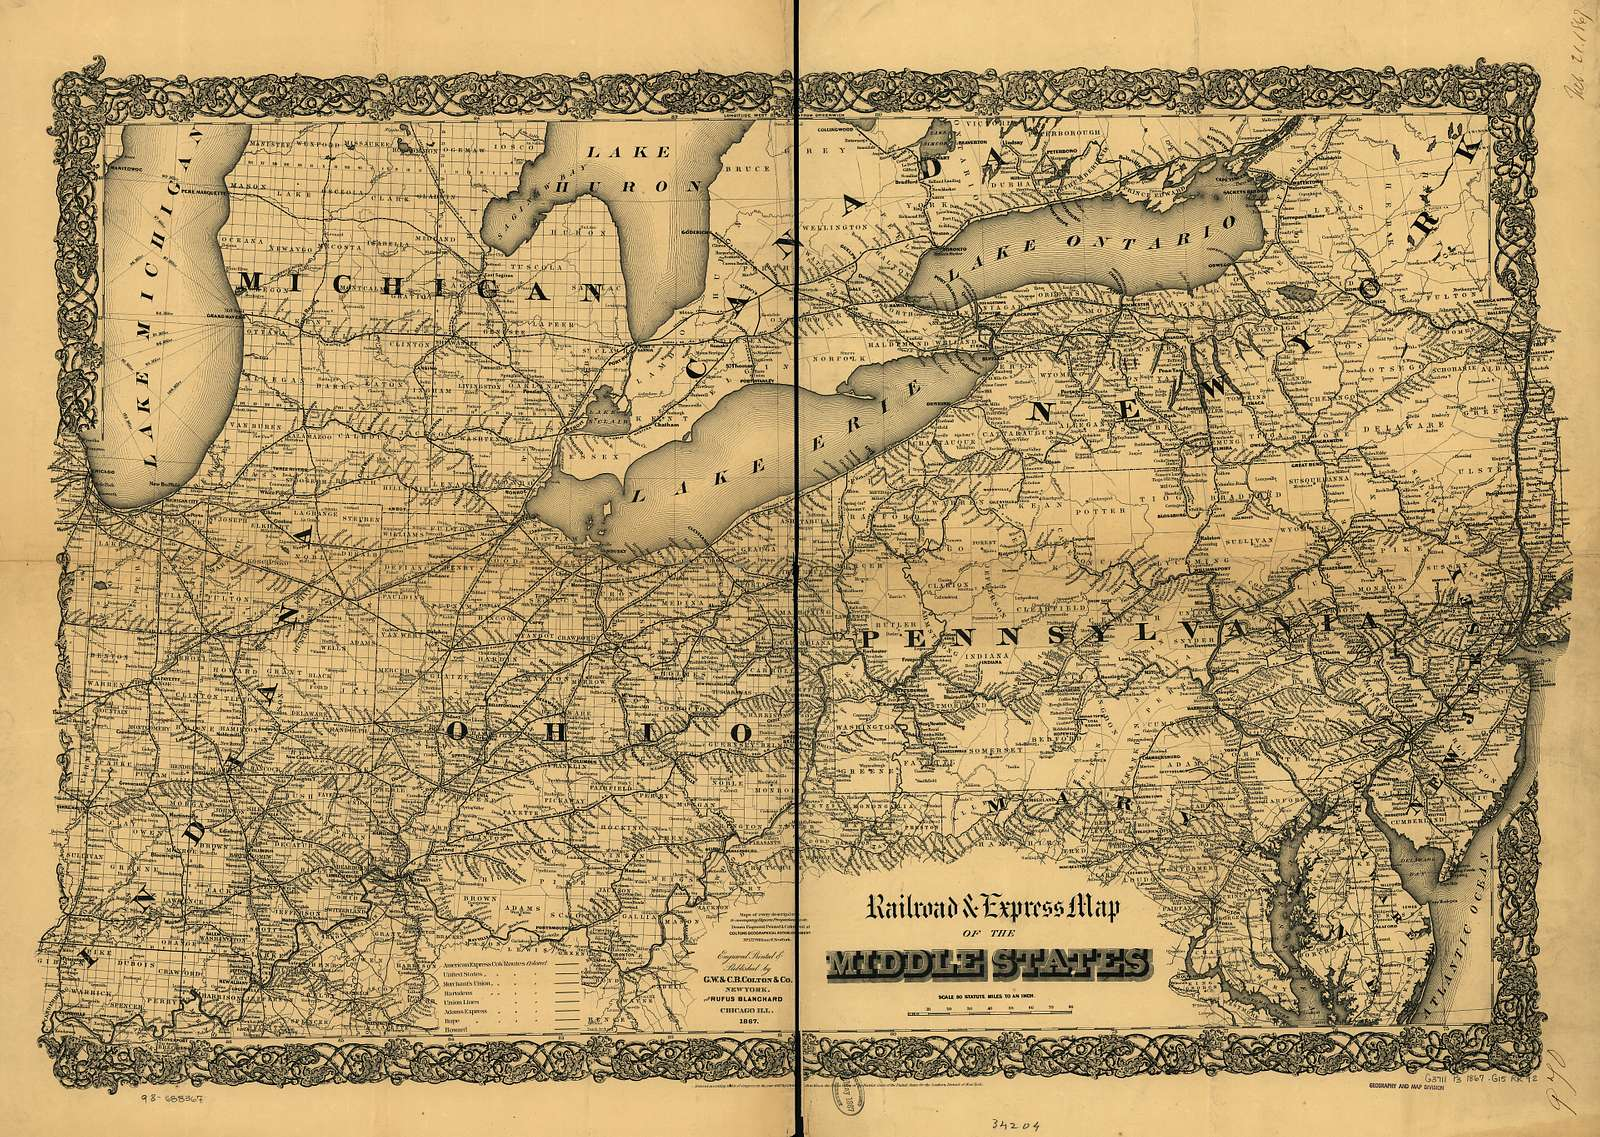 Railroad & express map of the middle states.